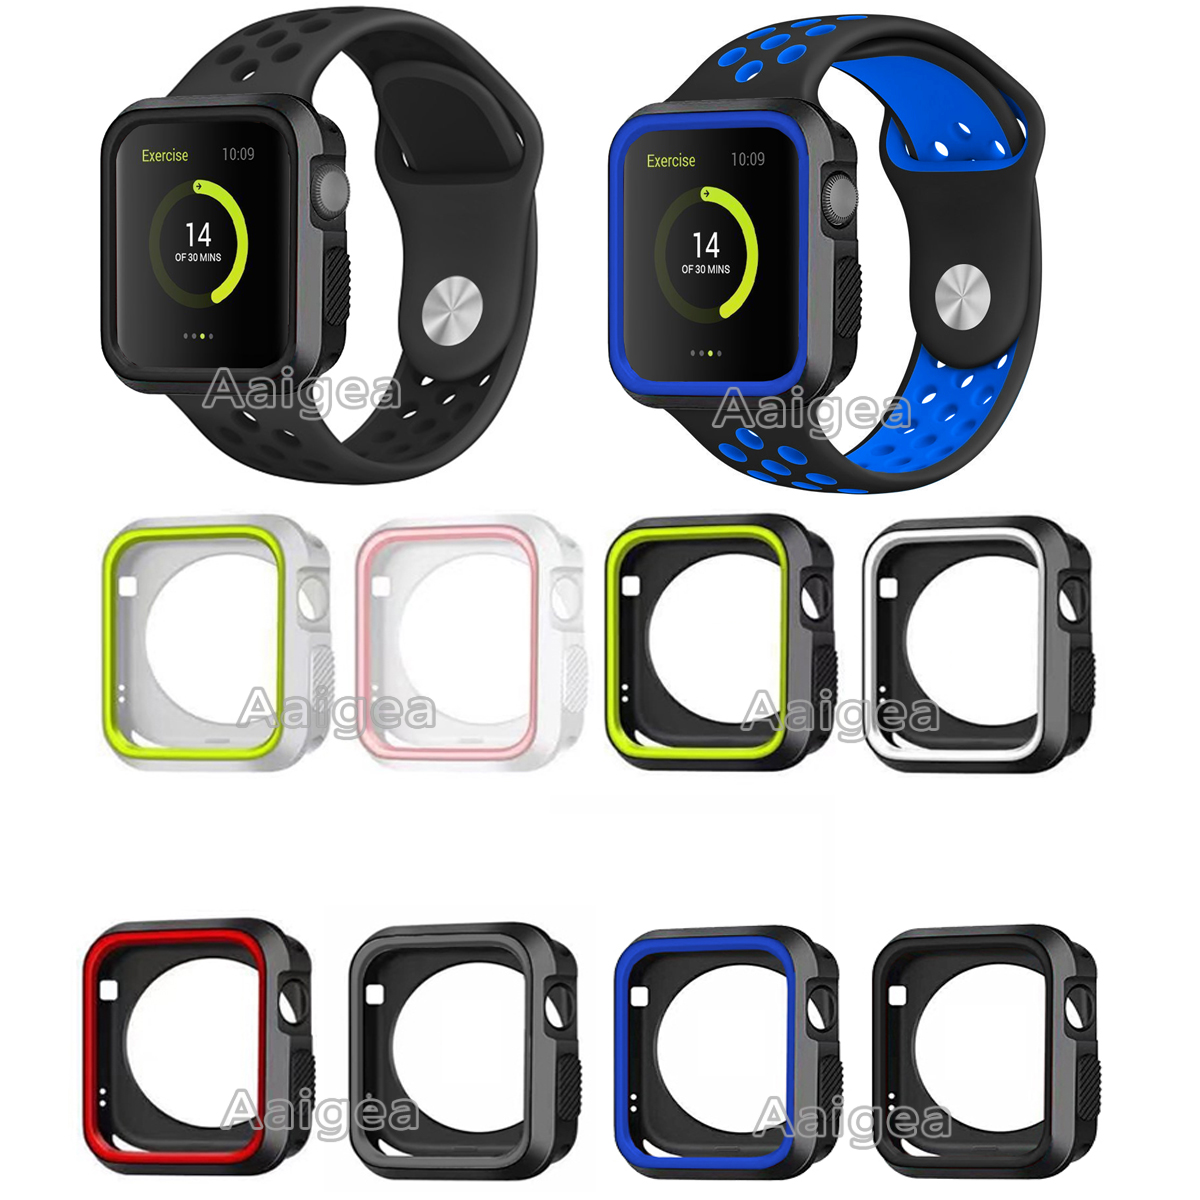 New Dual Colors Soft Silicone Case Bumper For Apple Watch iWatch Series 1 2 3 38mm 42mm All Model Full Protection Cover Frame series 1 2 3 soft silicone case for apple watch cover 38mm 42mm fashion plated tpu protective cover for iwatch